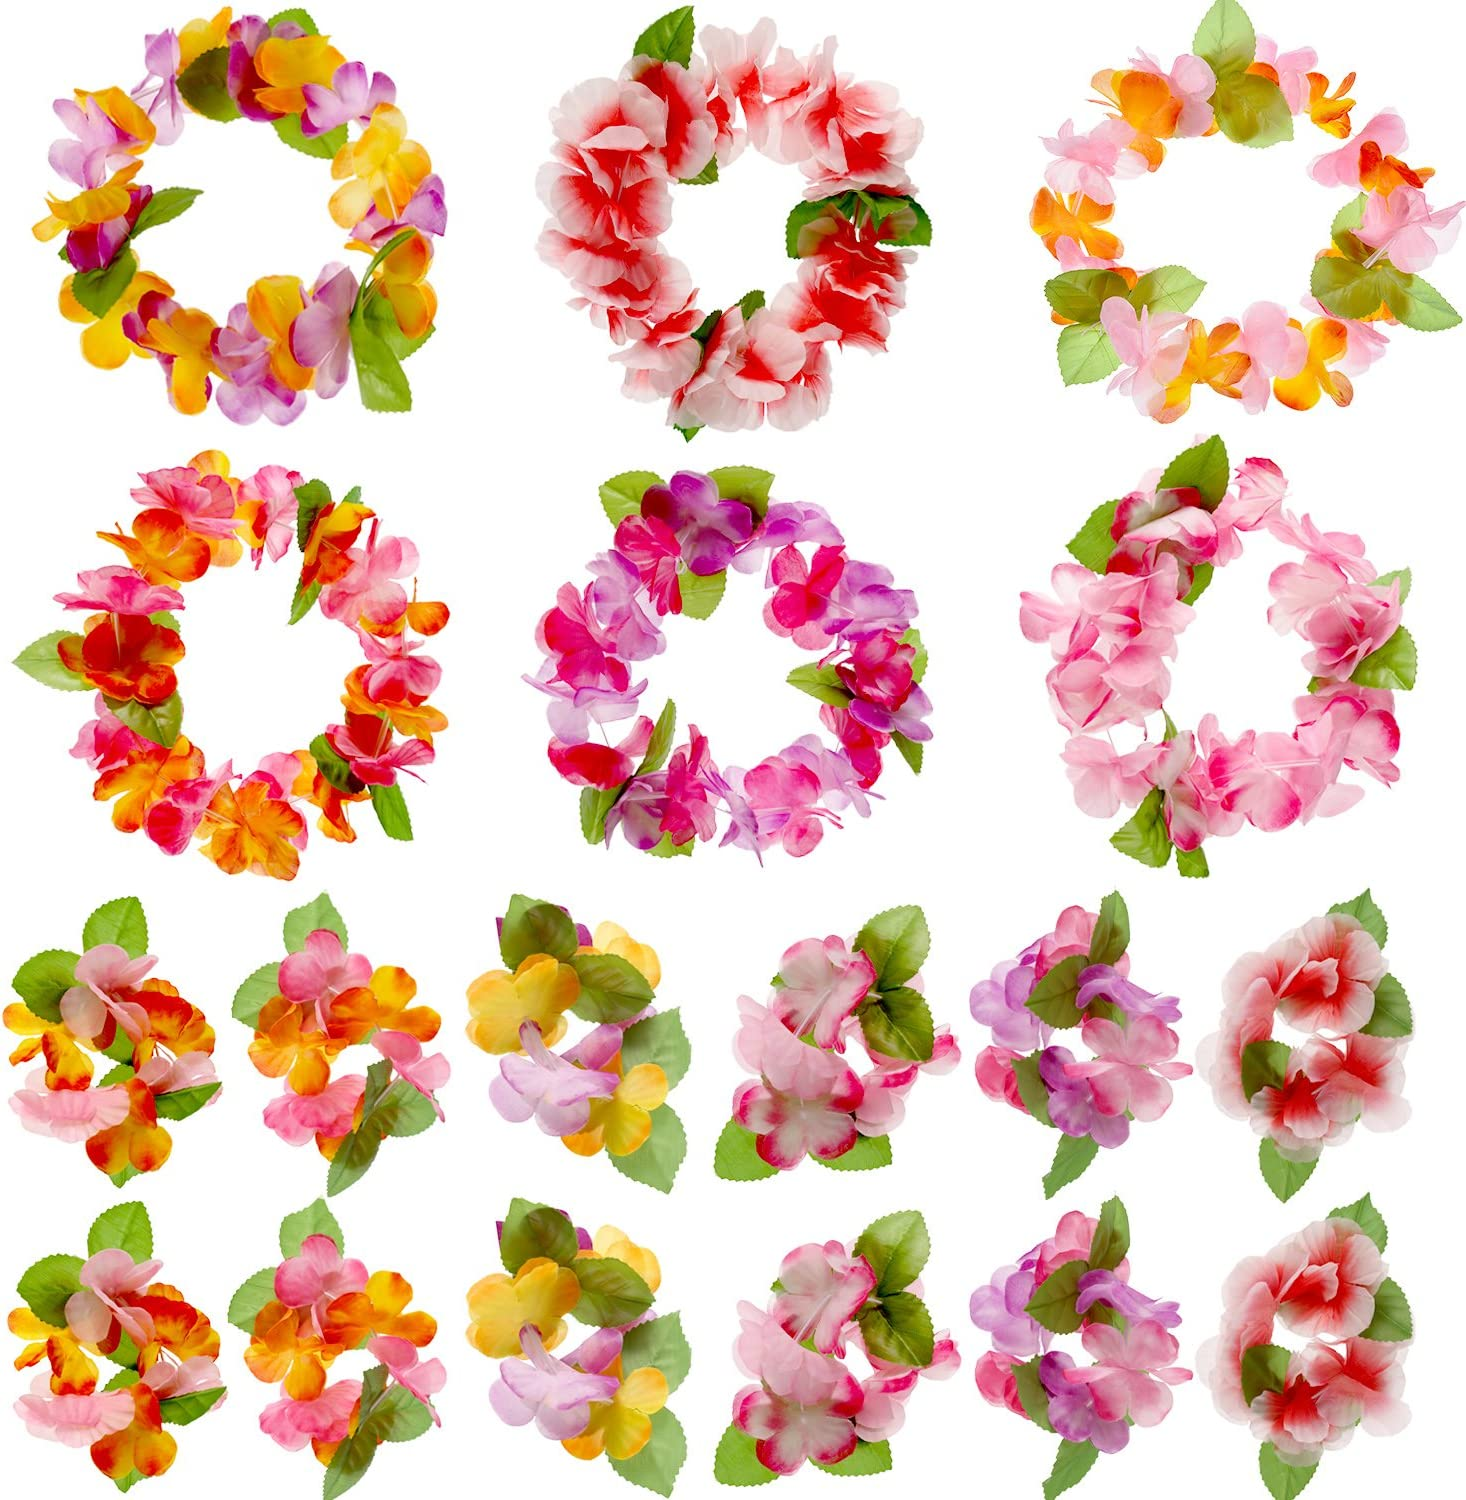 Jovitec 54 Pack Luau Tropical Hawaiian Headband Floral Leis Headband and Wristband for Costume Party Decoration Supplies, 6 Colors